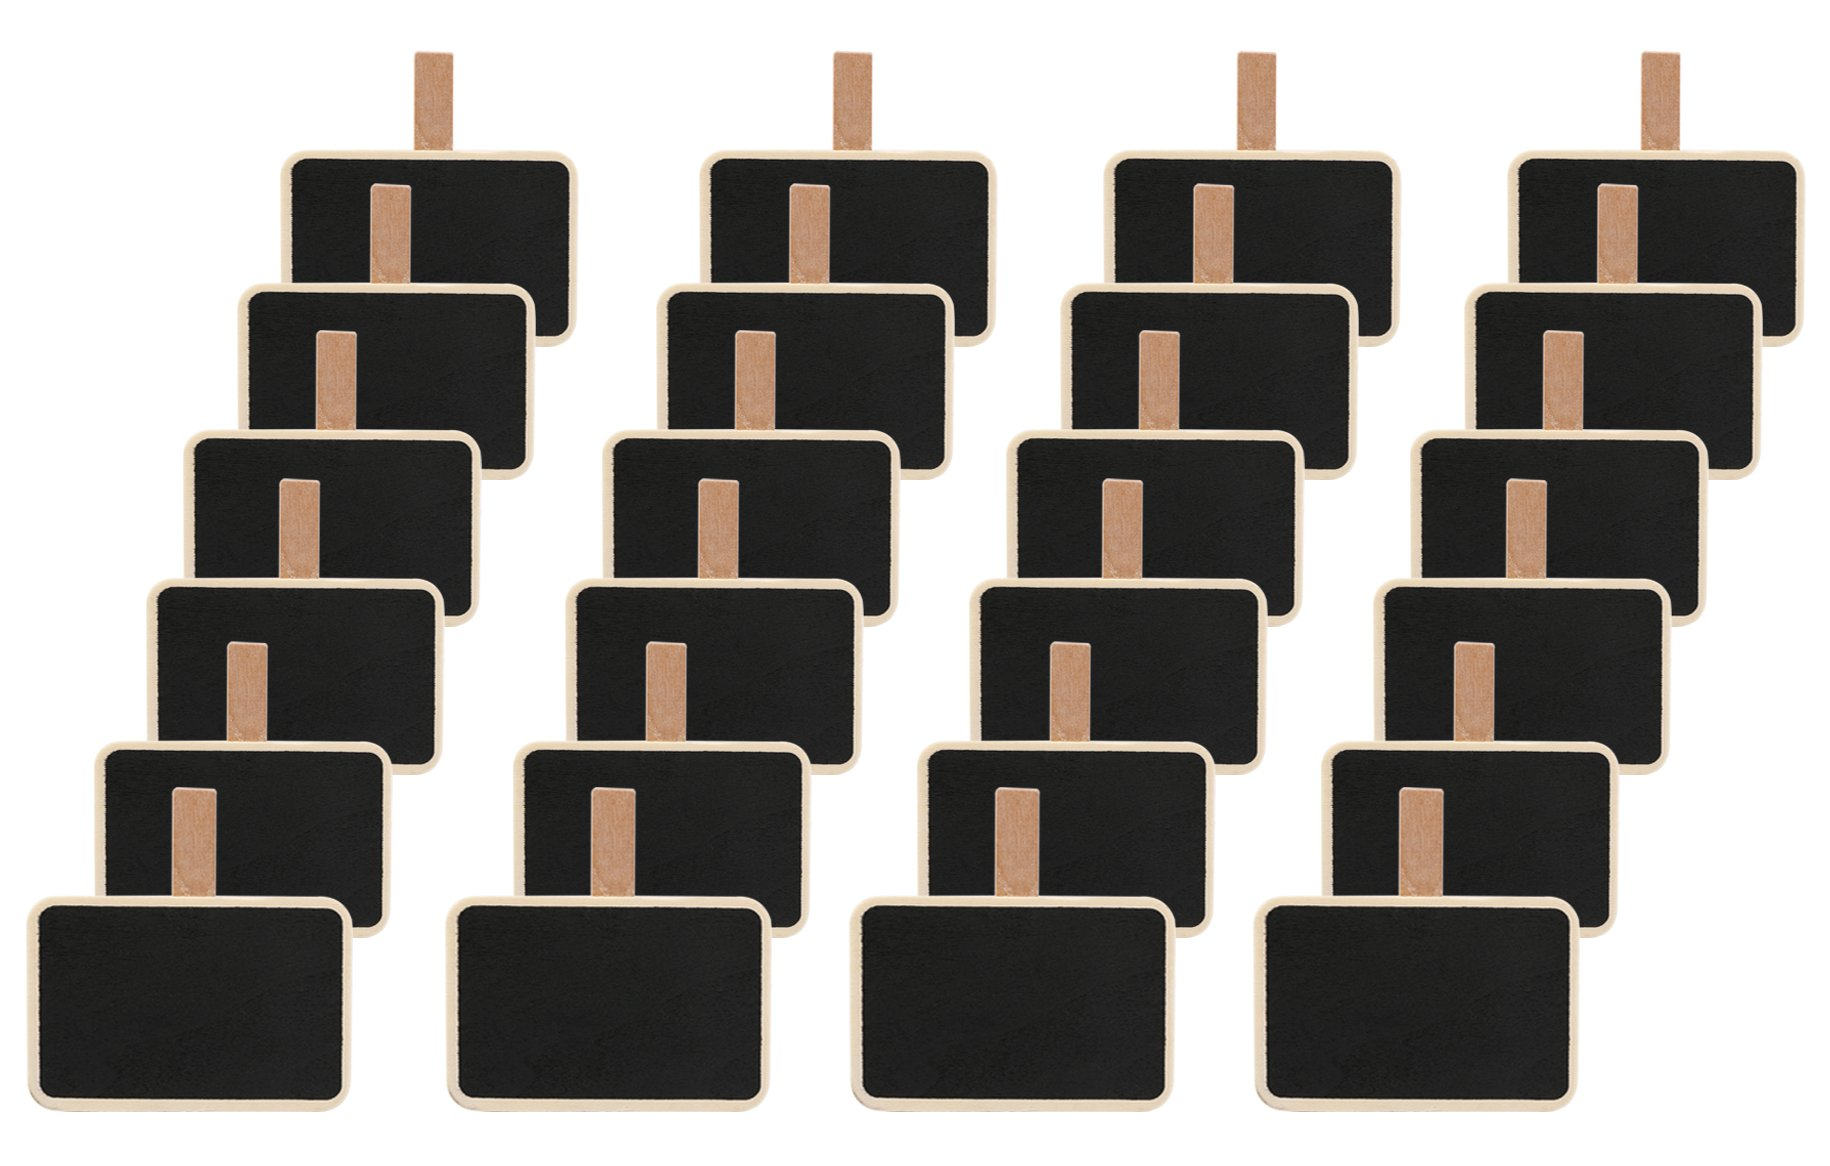 Dedoot 24pcs Rectangle Chalkboard Decorative Wooden Chalk Board Clip, Message Chalk Board Signs Labels Clips for Wedding Kitchen Party Decor Note Taking